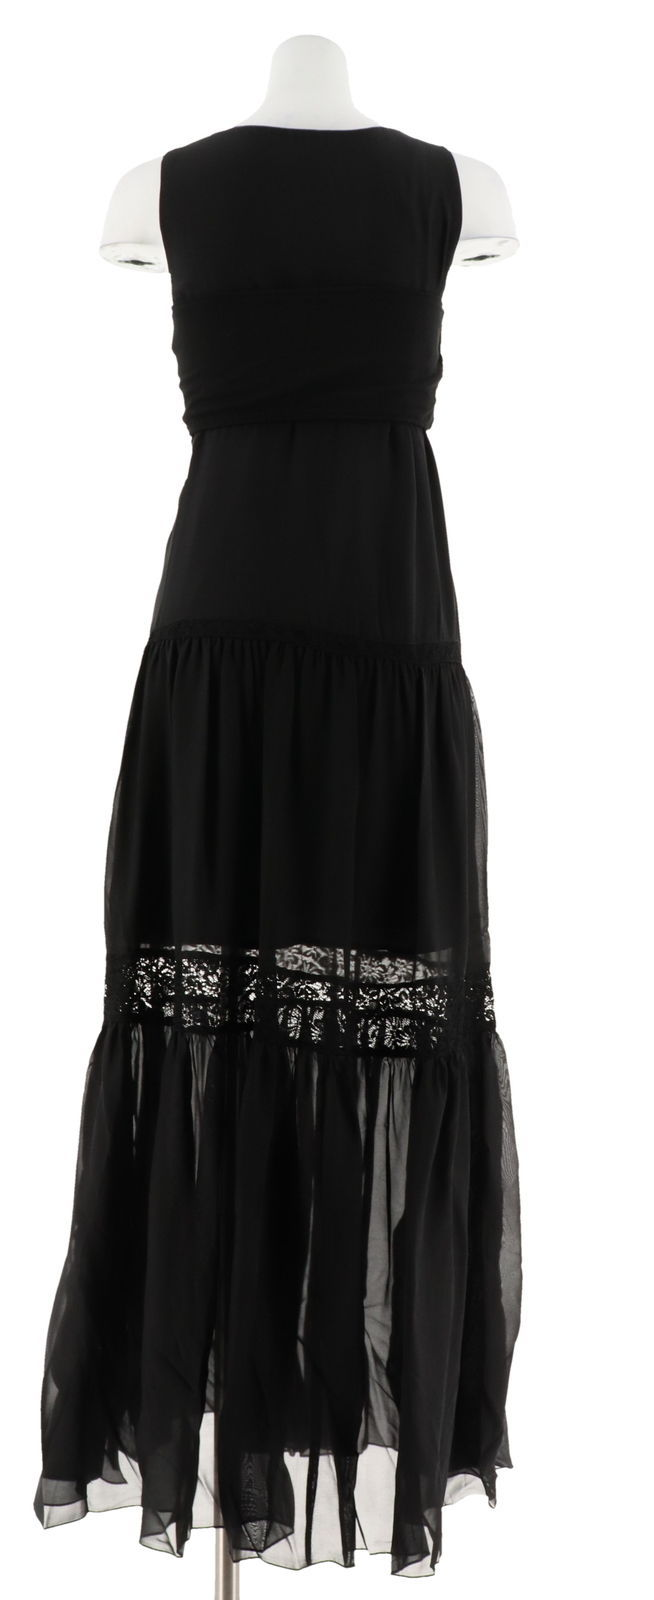 GILI Silk Tiered Lace Trim V-Neck Slvless Maxi Dress Noir Black 8 NEW A264109